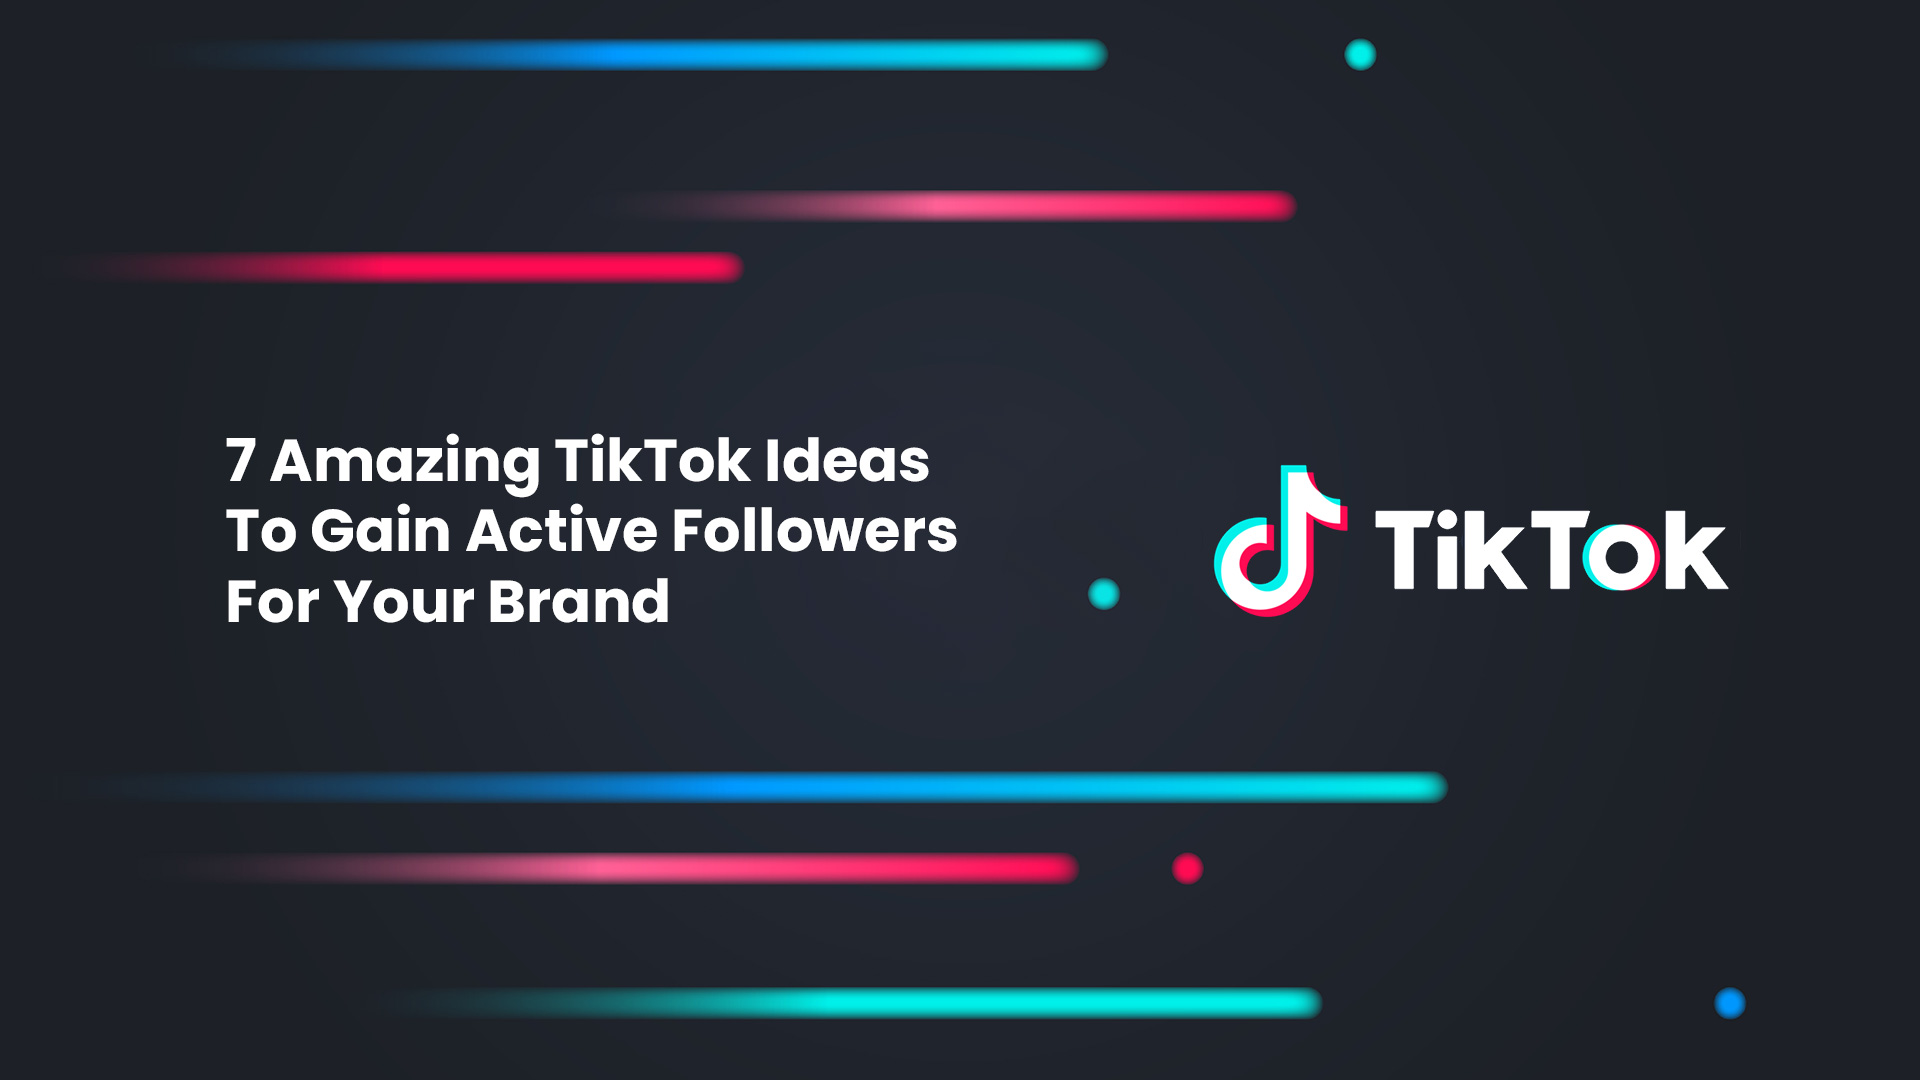 7 Amazing TikTok Ideas To Gain Active Followers For Your Brand